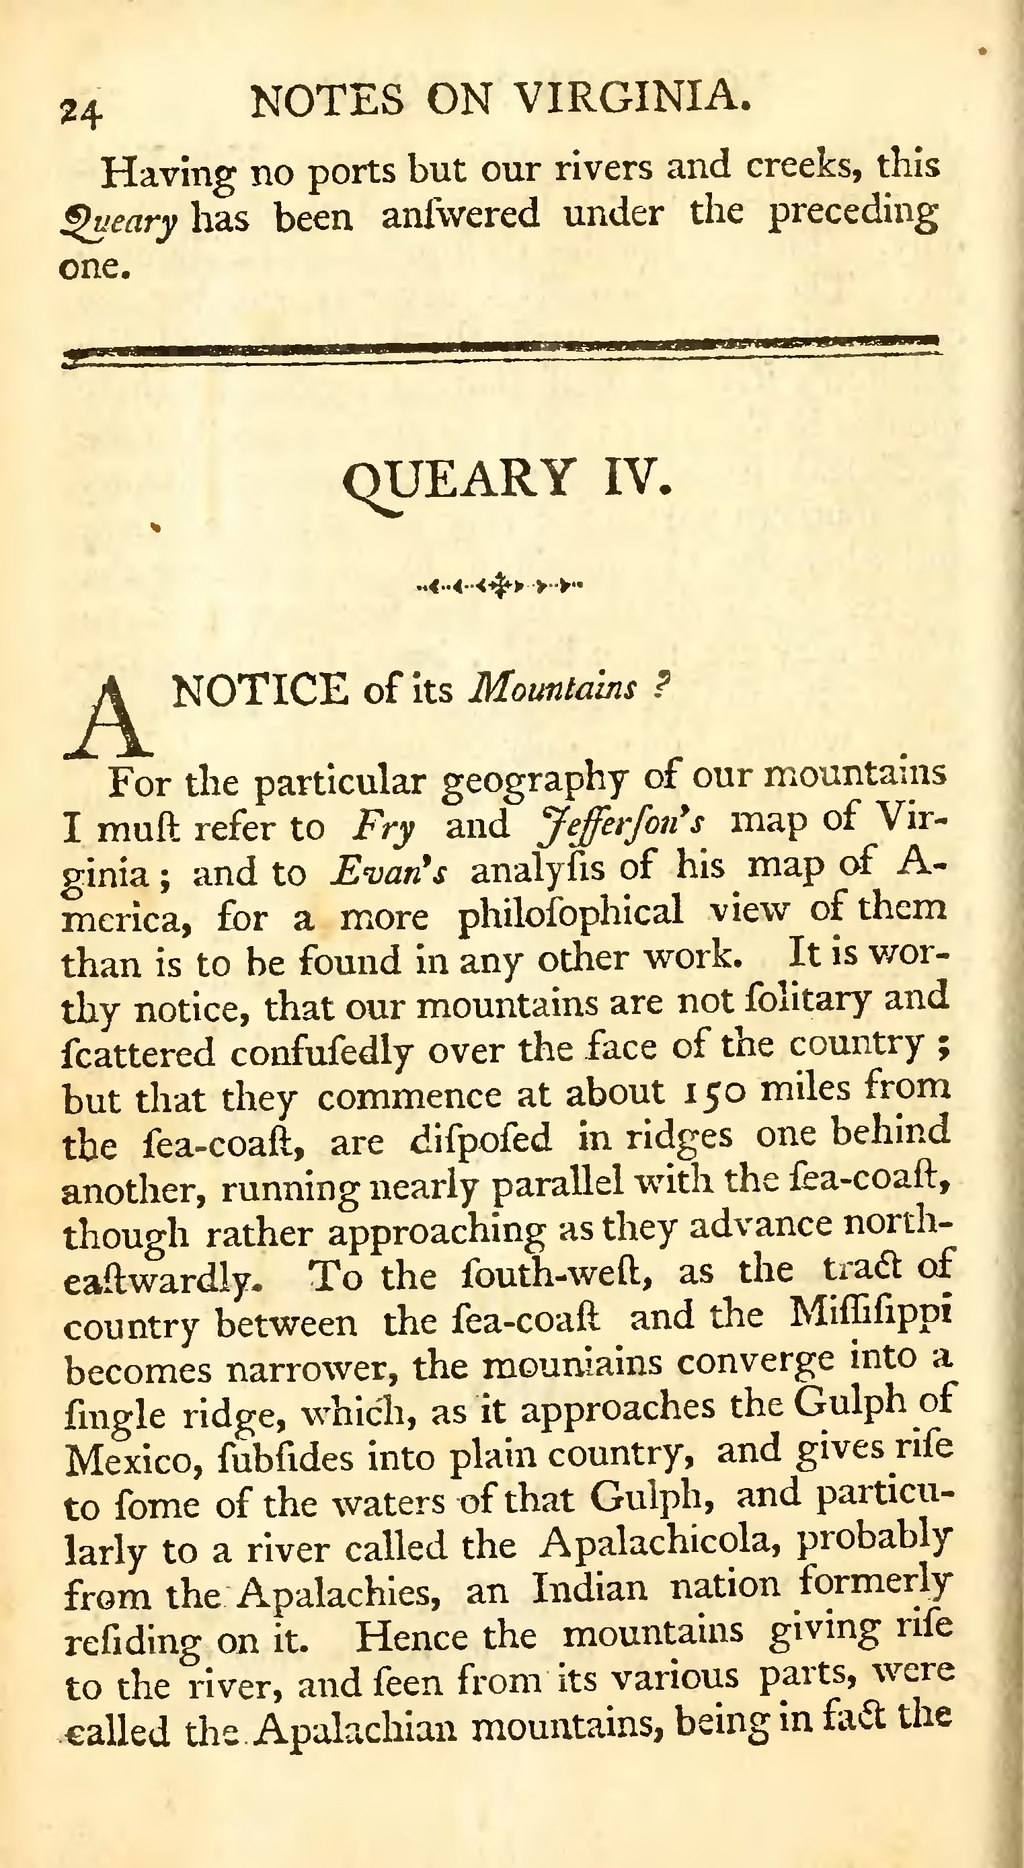 notes on the state of virginia thesis From notes on the state of virginia (1784) | thomas jefferson warning: thomas jefferson makes several racially offensive remarks in the passages below.